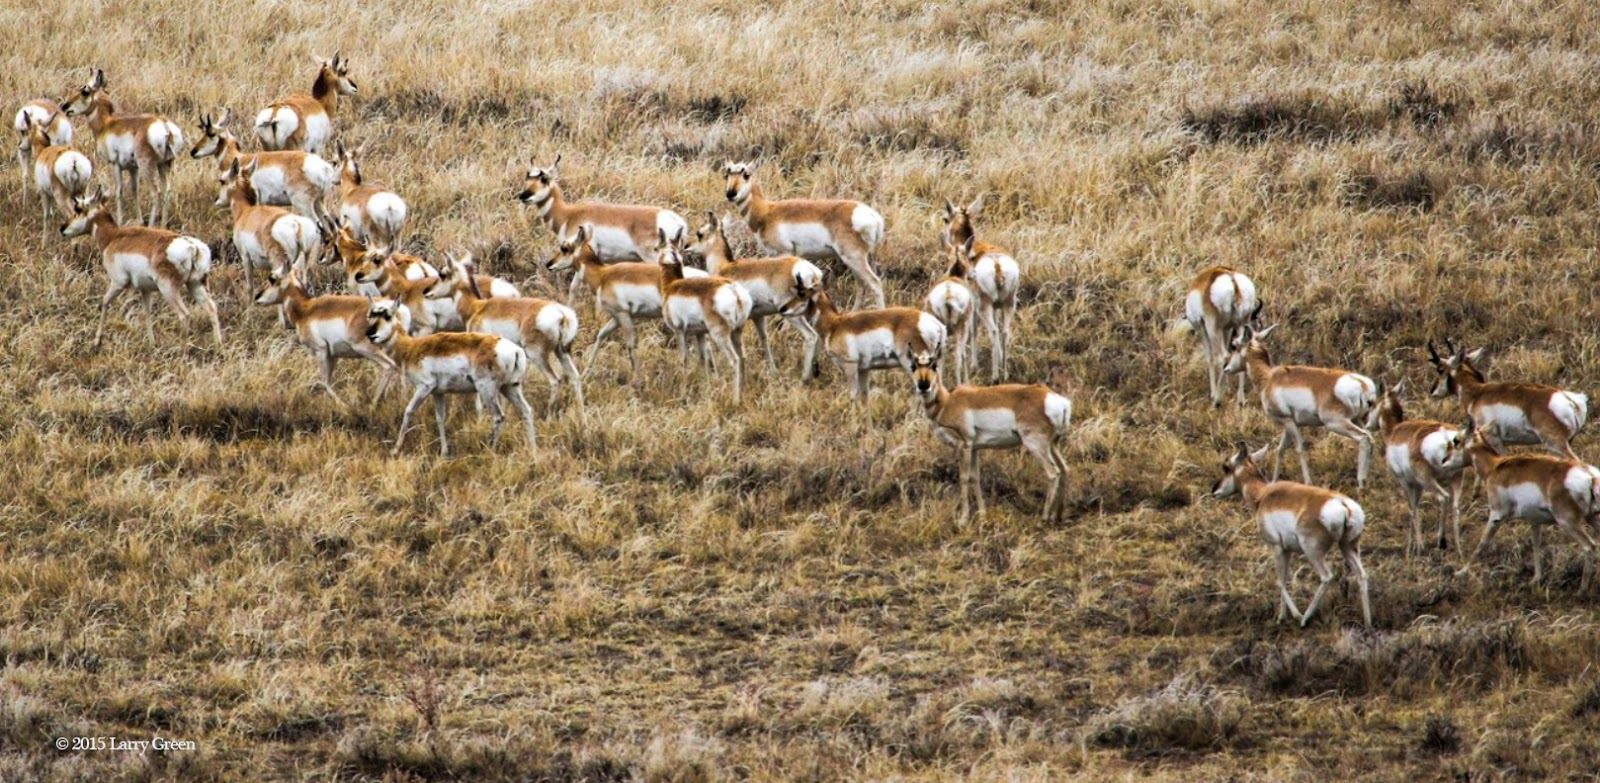 Antelope graze in grasslands in Thunder Basin, Wyoming